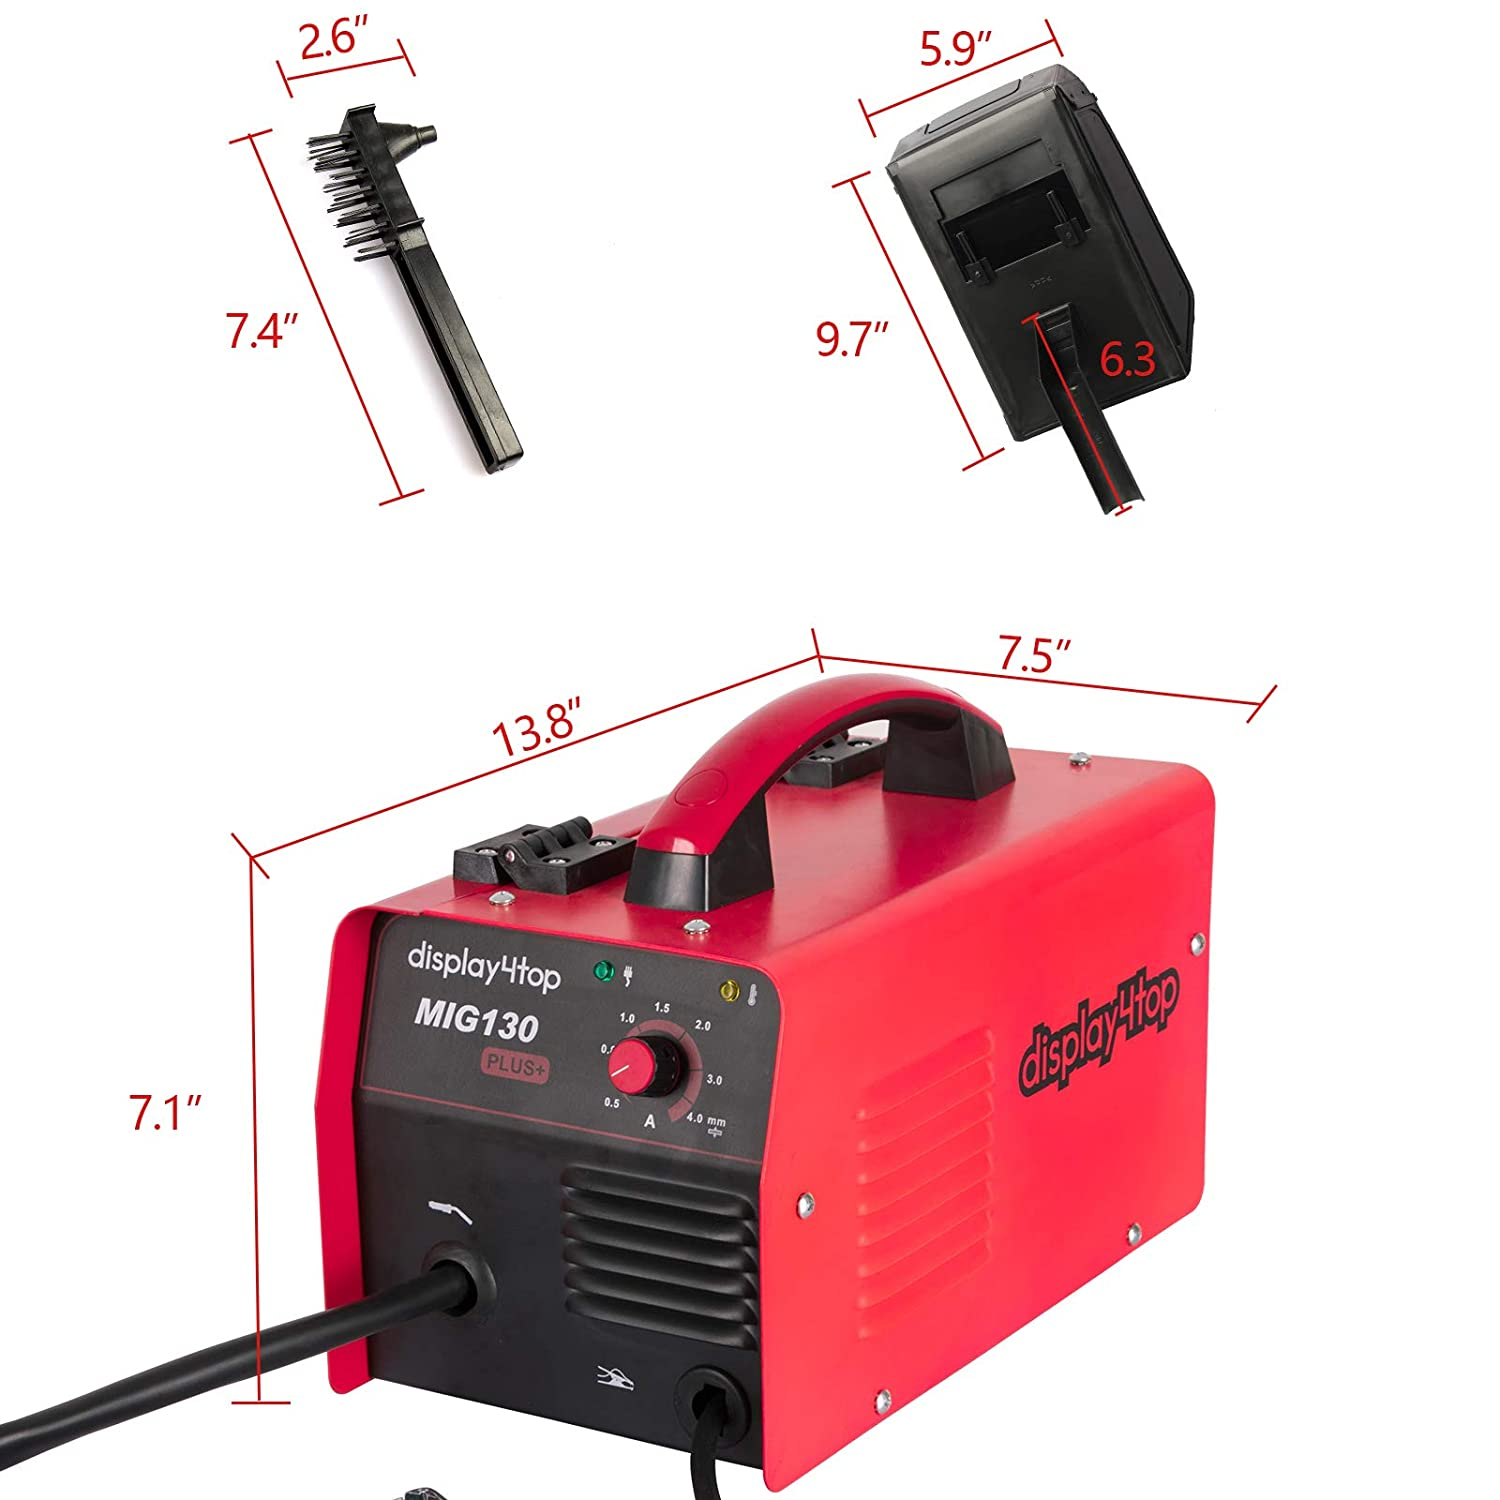 Display4top Portable No Gas MIG 130 PLUS Welder Flux Core Wire Automatic Feed Welding Machine,DIY Home Welder w//Free Mask 110V